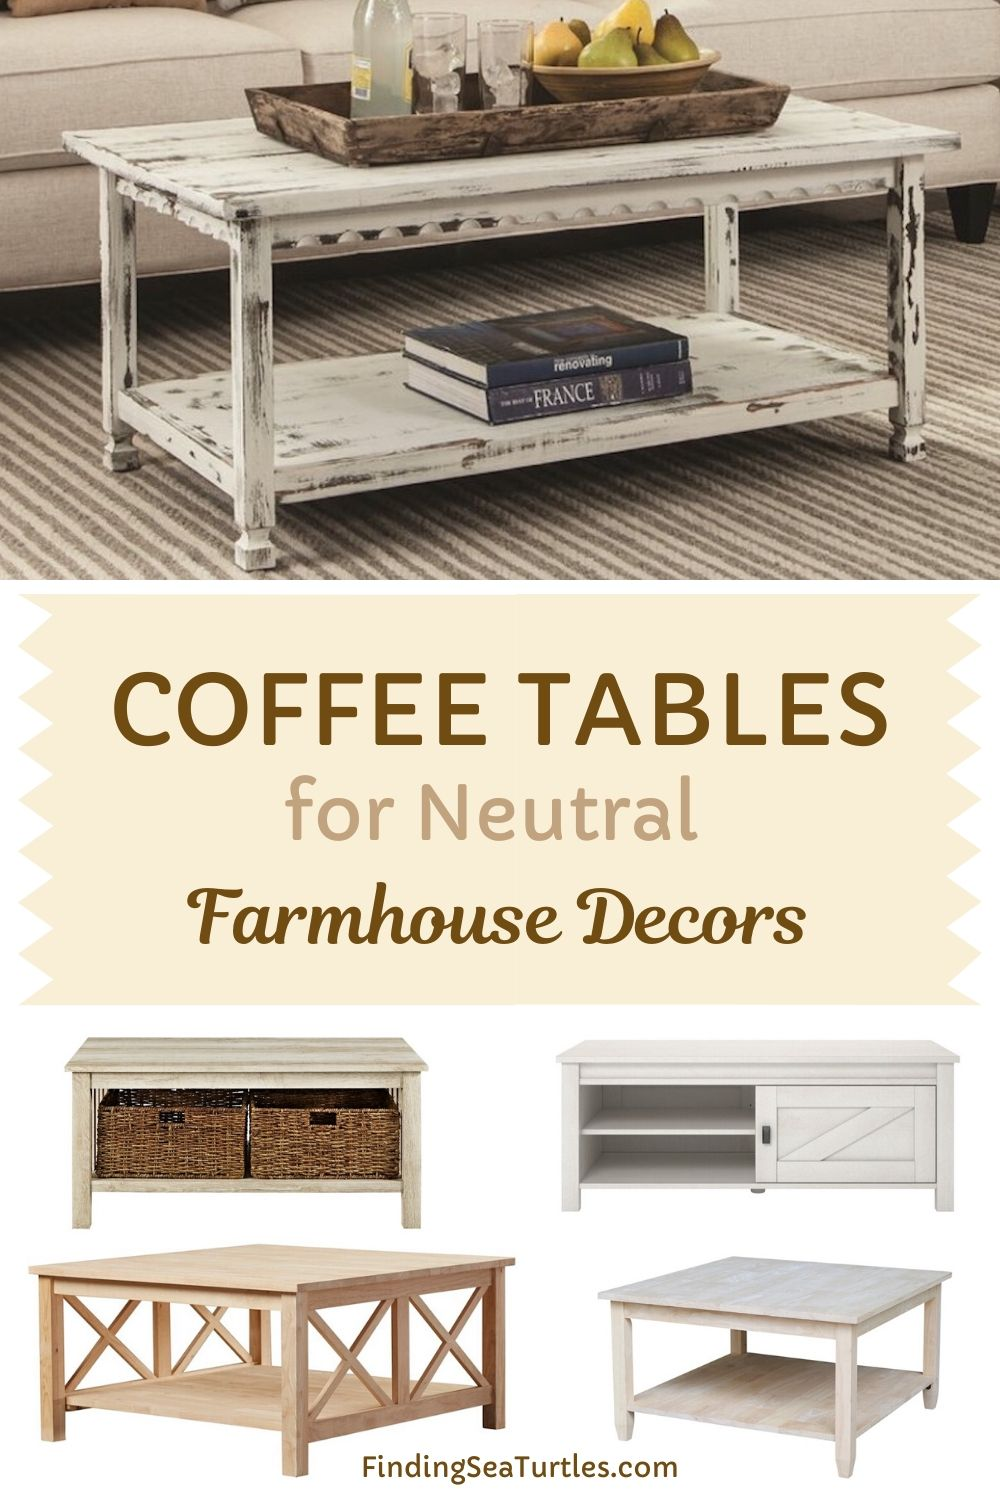 COFFEE TABLES for Neutral Farmhouse Decors #Farmhouse #FarmhouseDecor #Decor #CountryStyleDecor #CoffeeTables #CountryDecor #AffordableFarmhouse